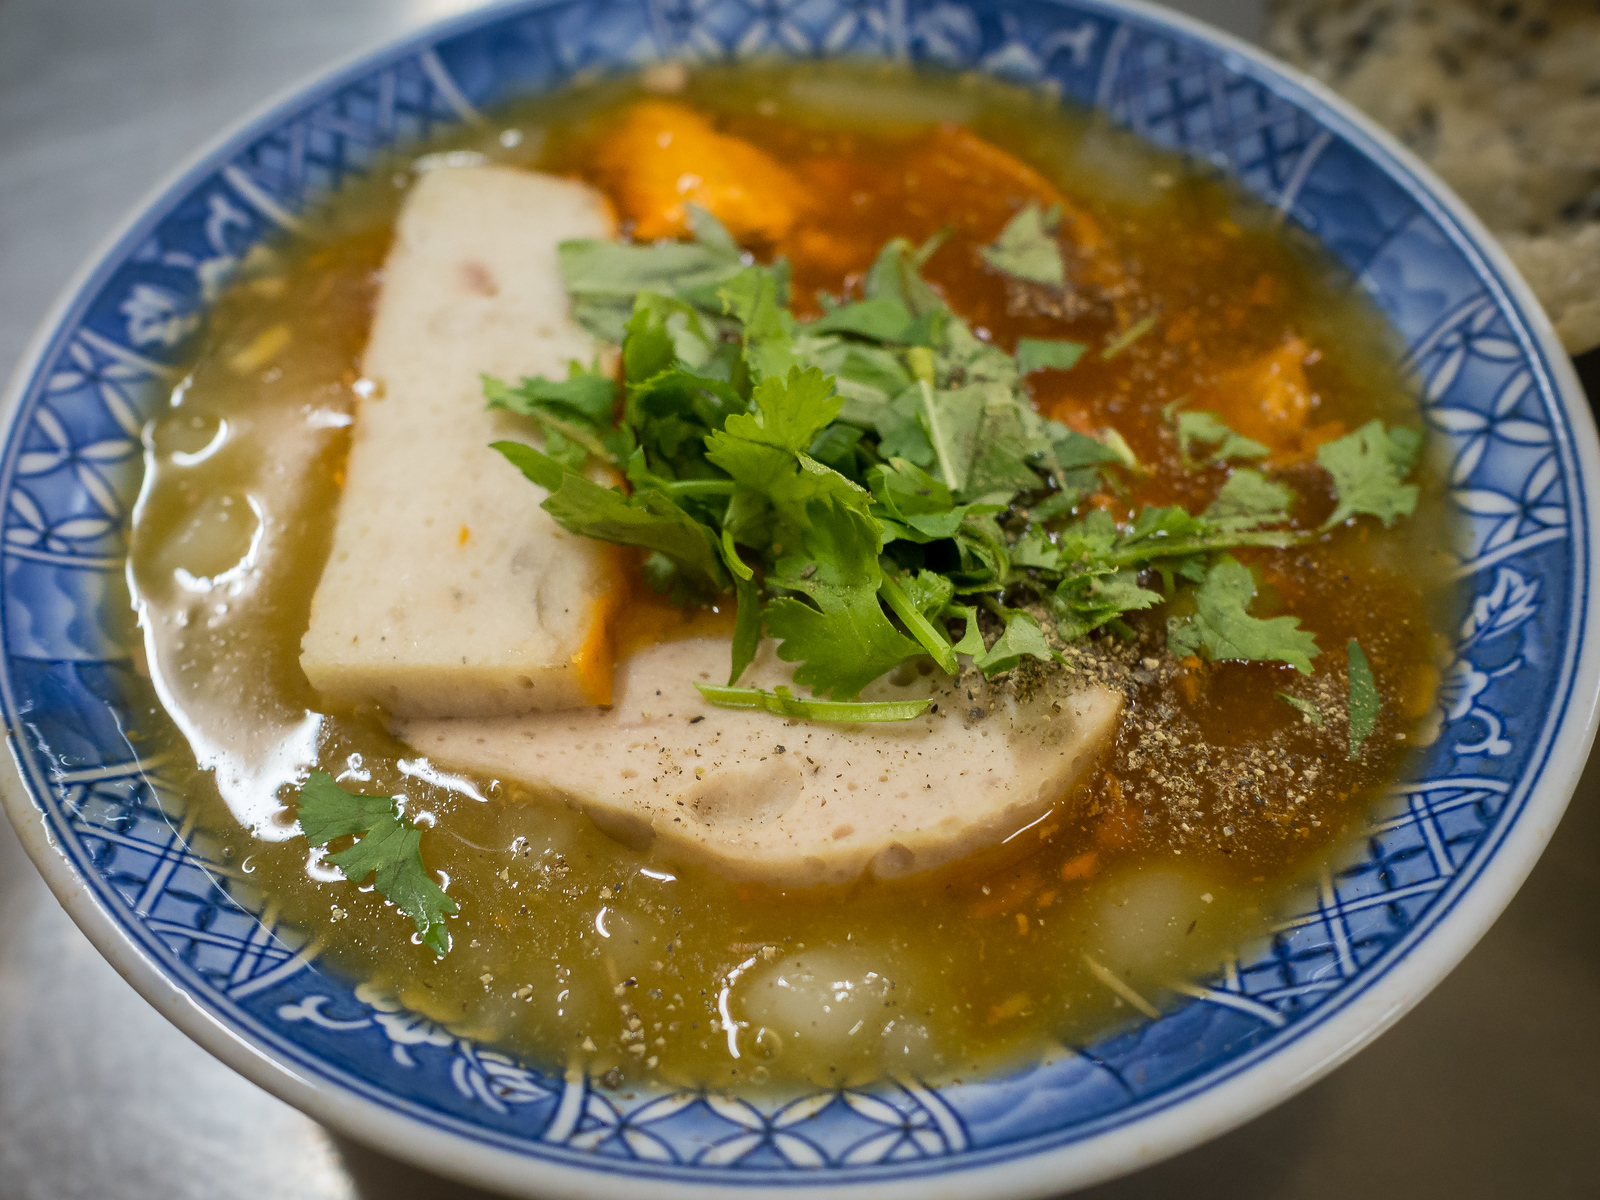 banh canh cua noodle soup